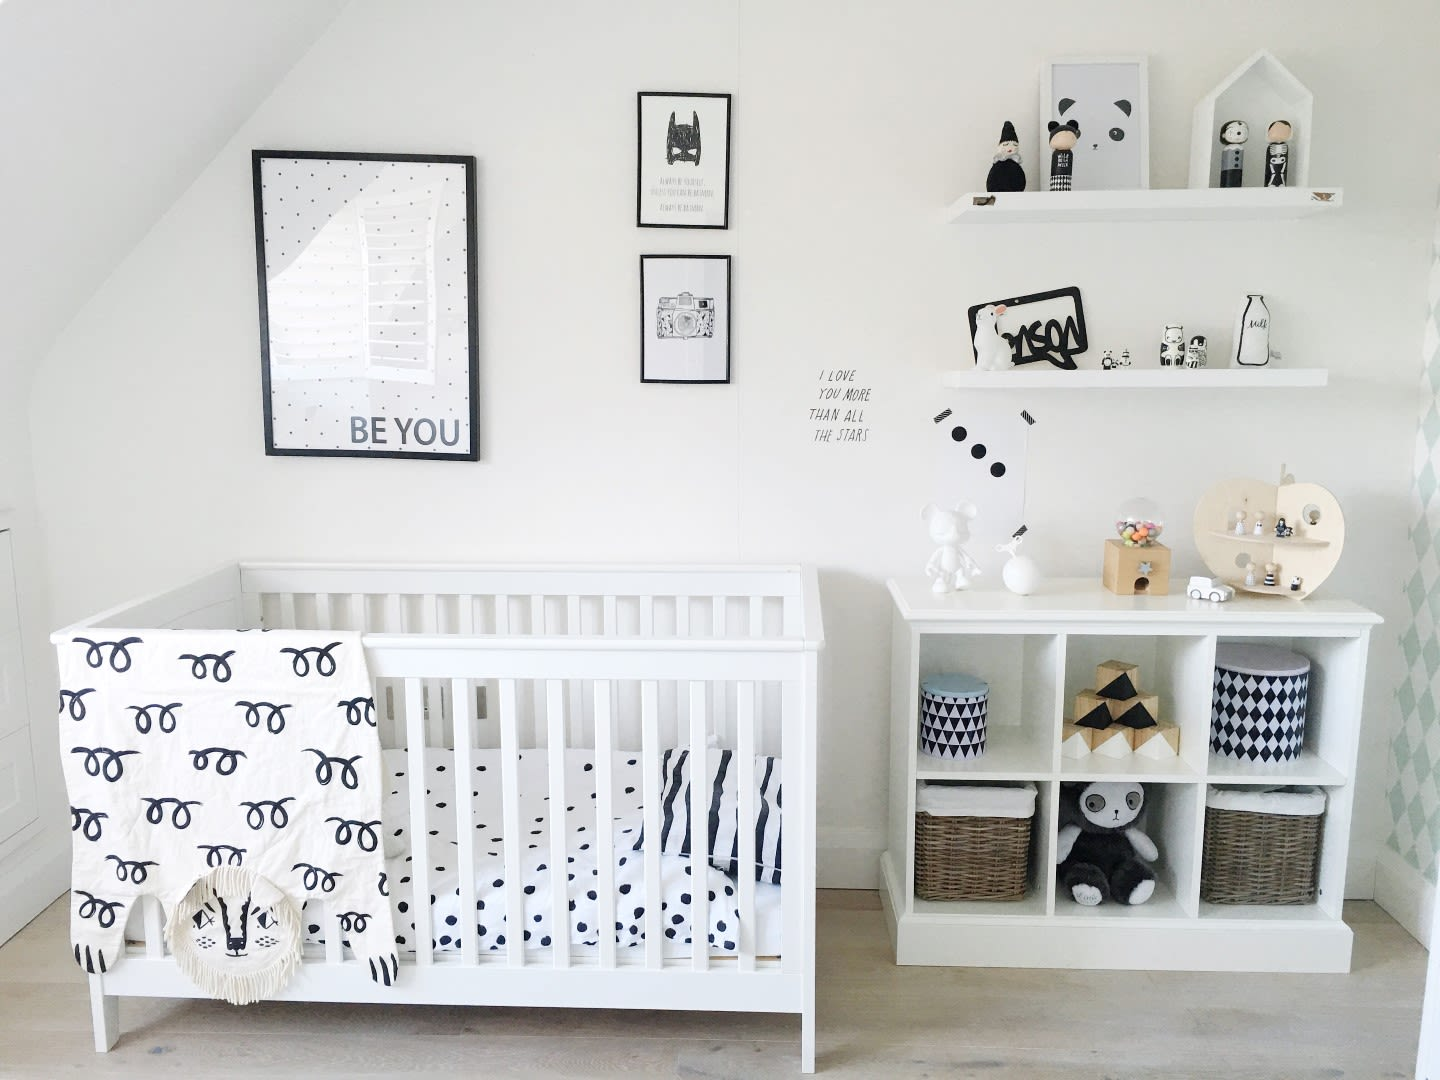 Children Bedroom Decoration Ideas 2018 - How To Keep Your Kids Happy